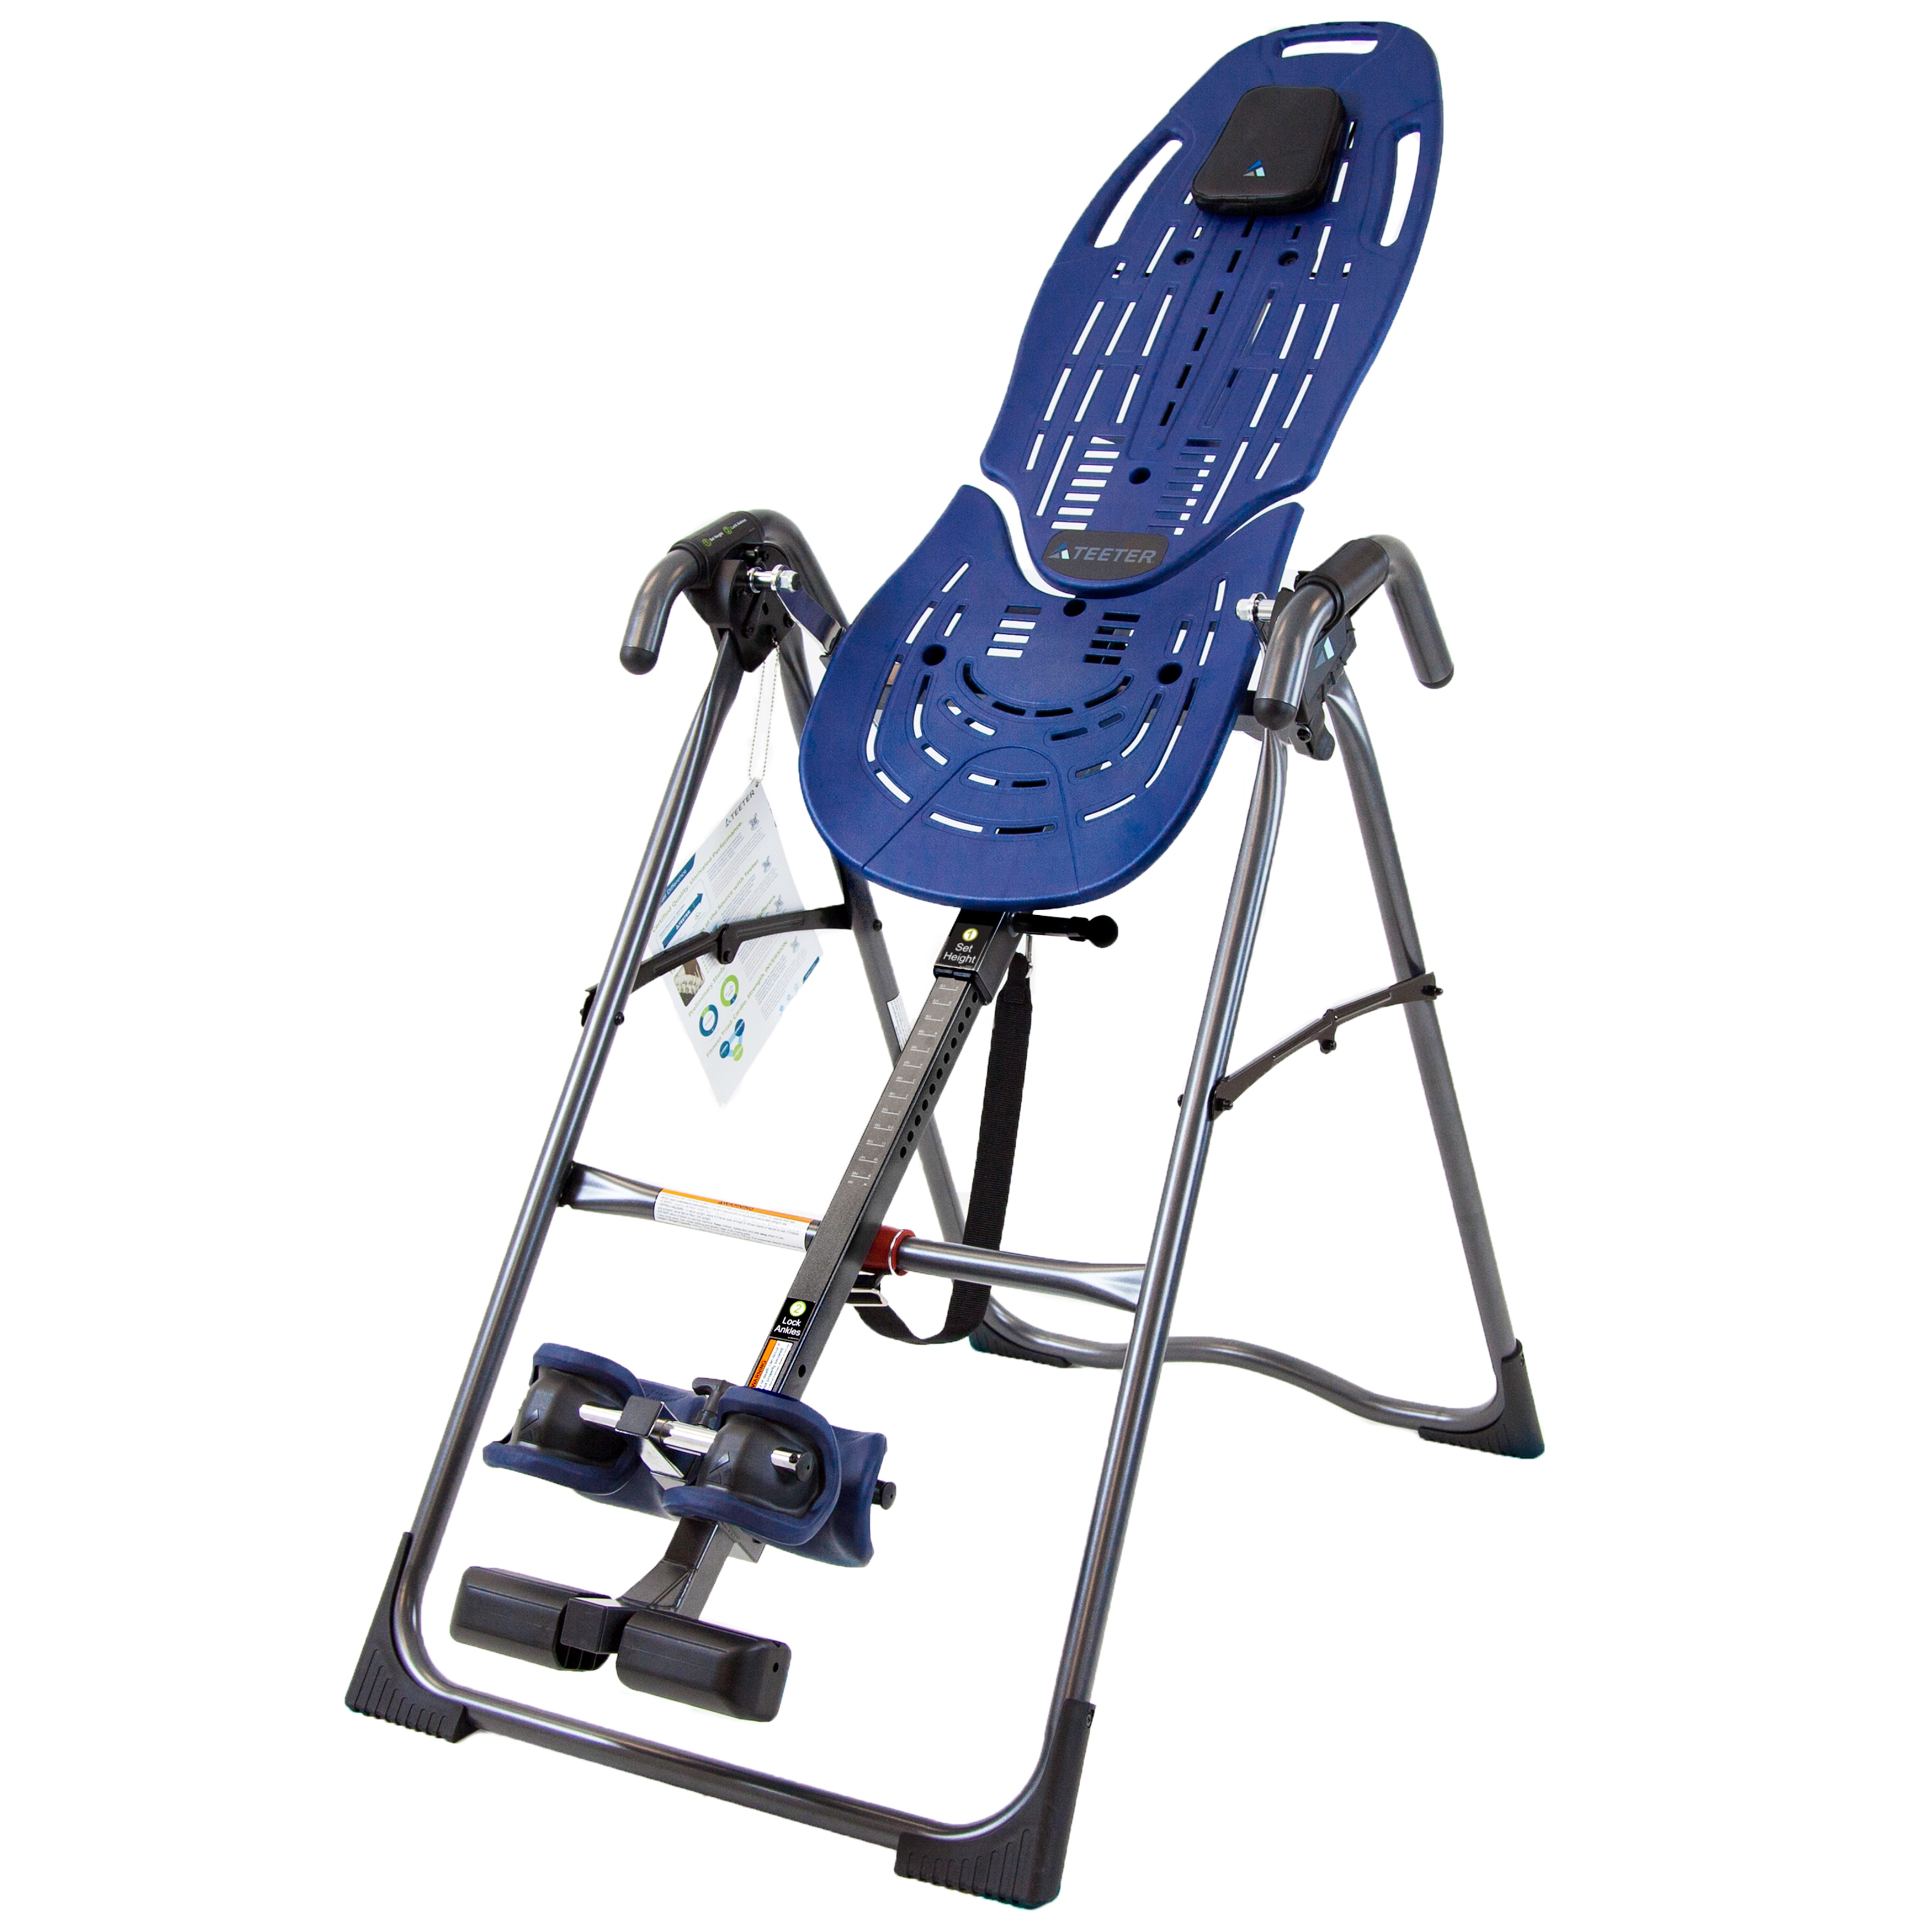 Teeter Ep 560 Inversion Table With Back Pain Relief Dvd Walmart Com